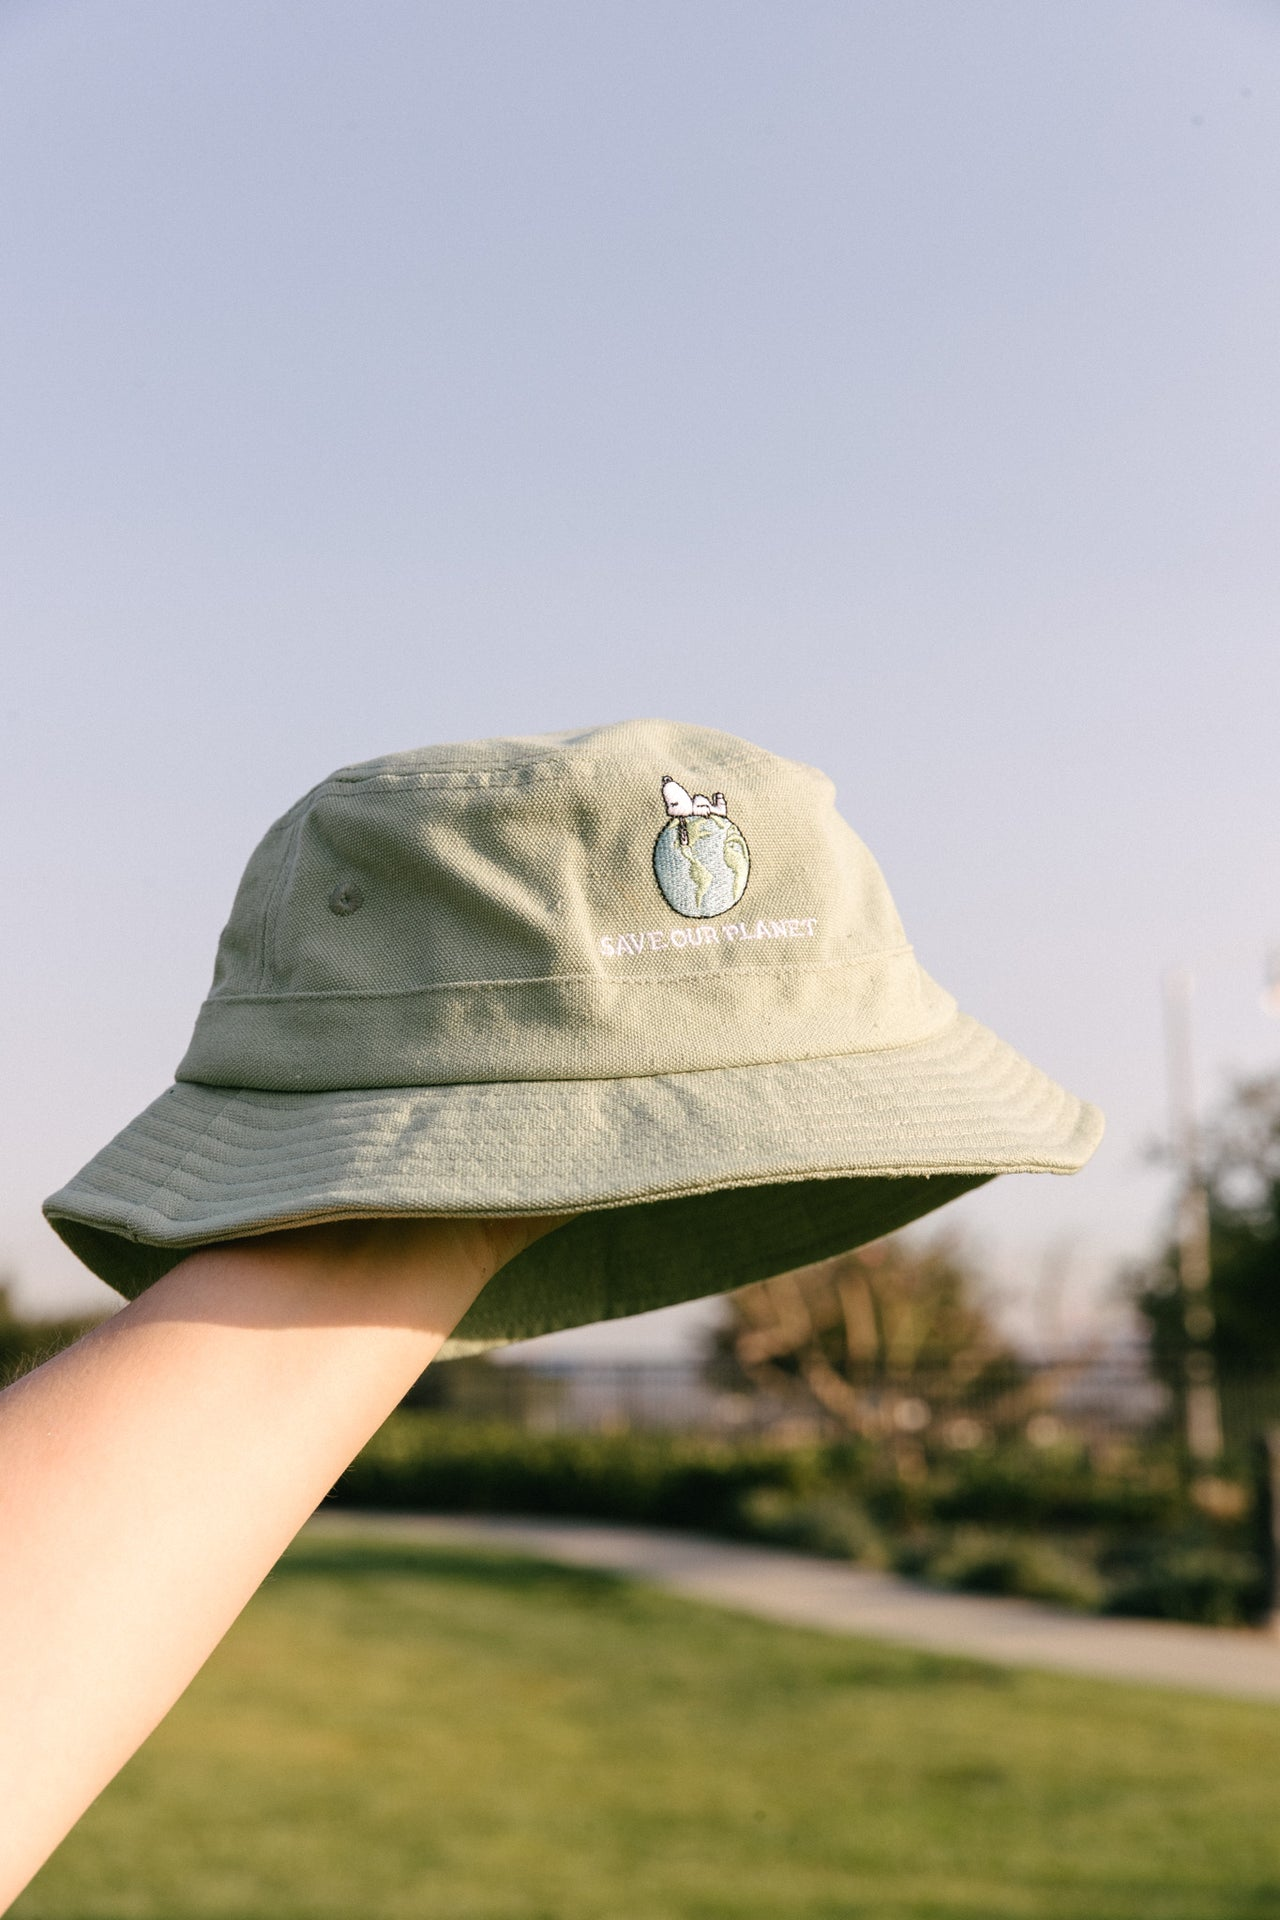 Snoopy Save Our Planet Bucket Hat - Desert Dreamer